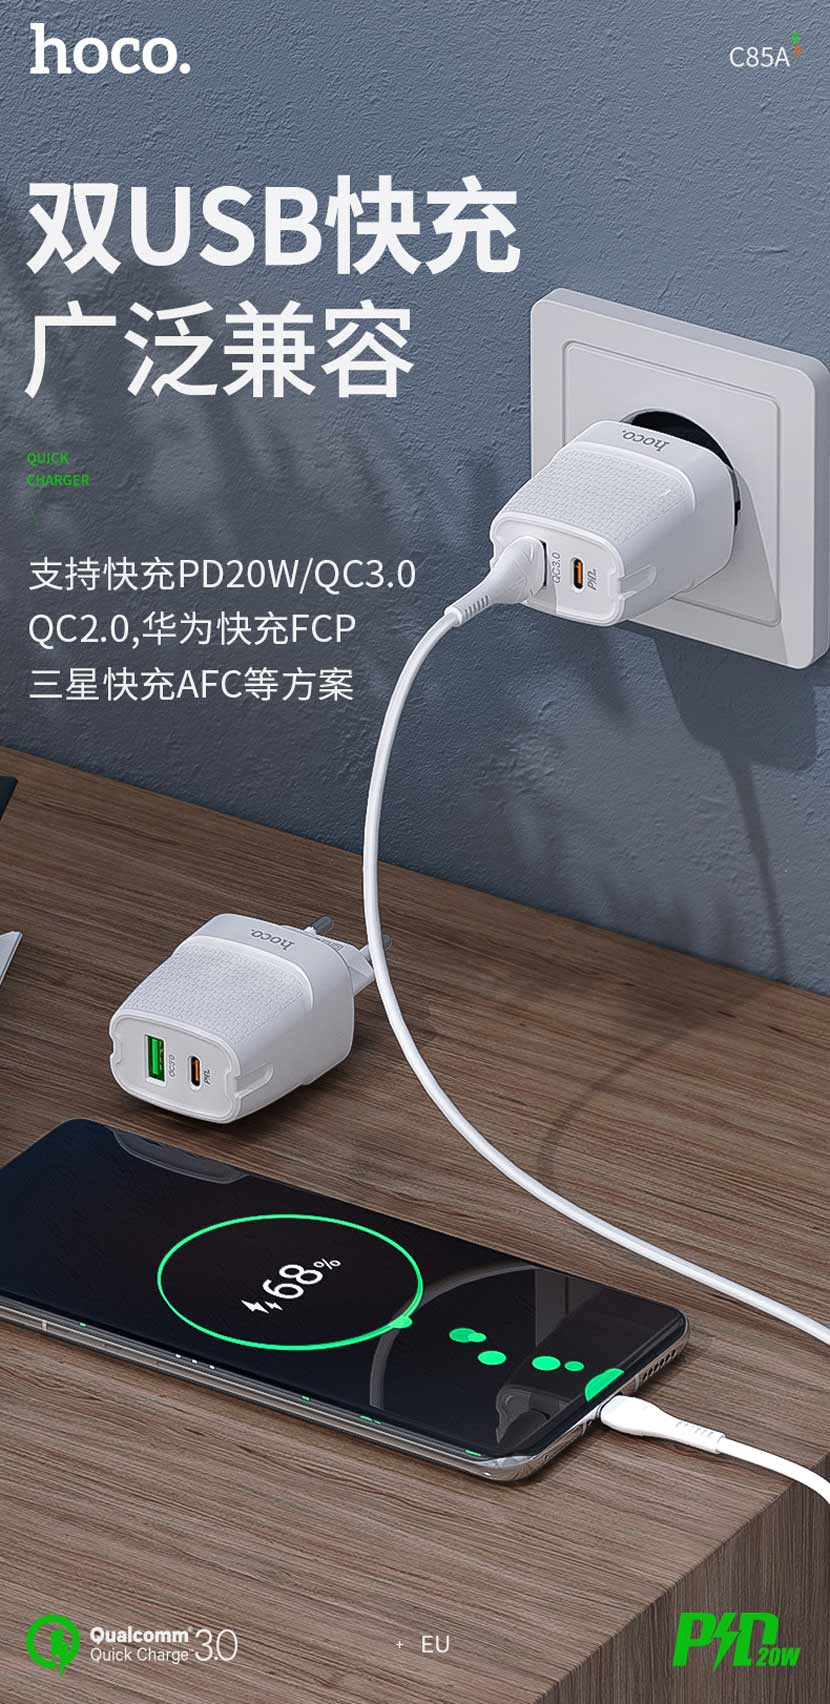 hoco news c85 bright dual port pd20w qc3 wall charger compatible cn